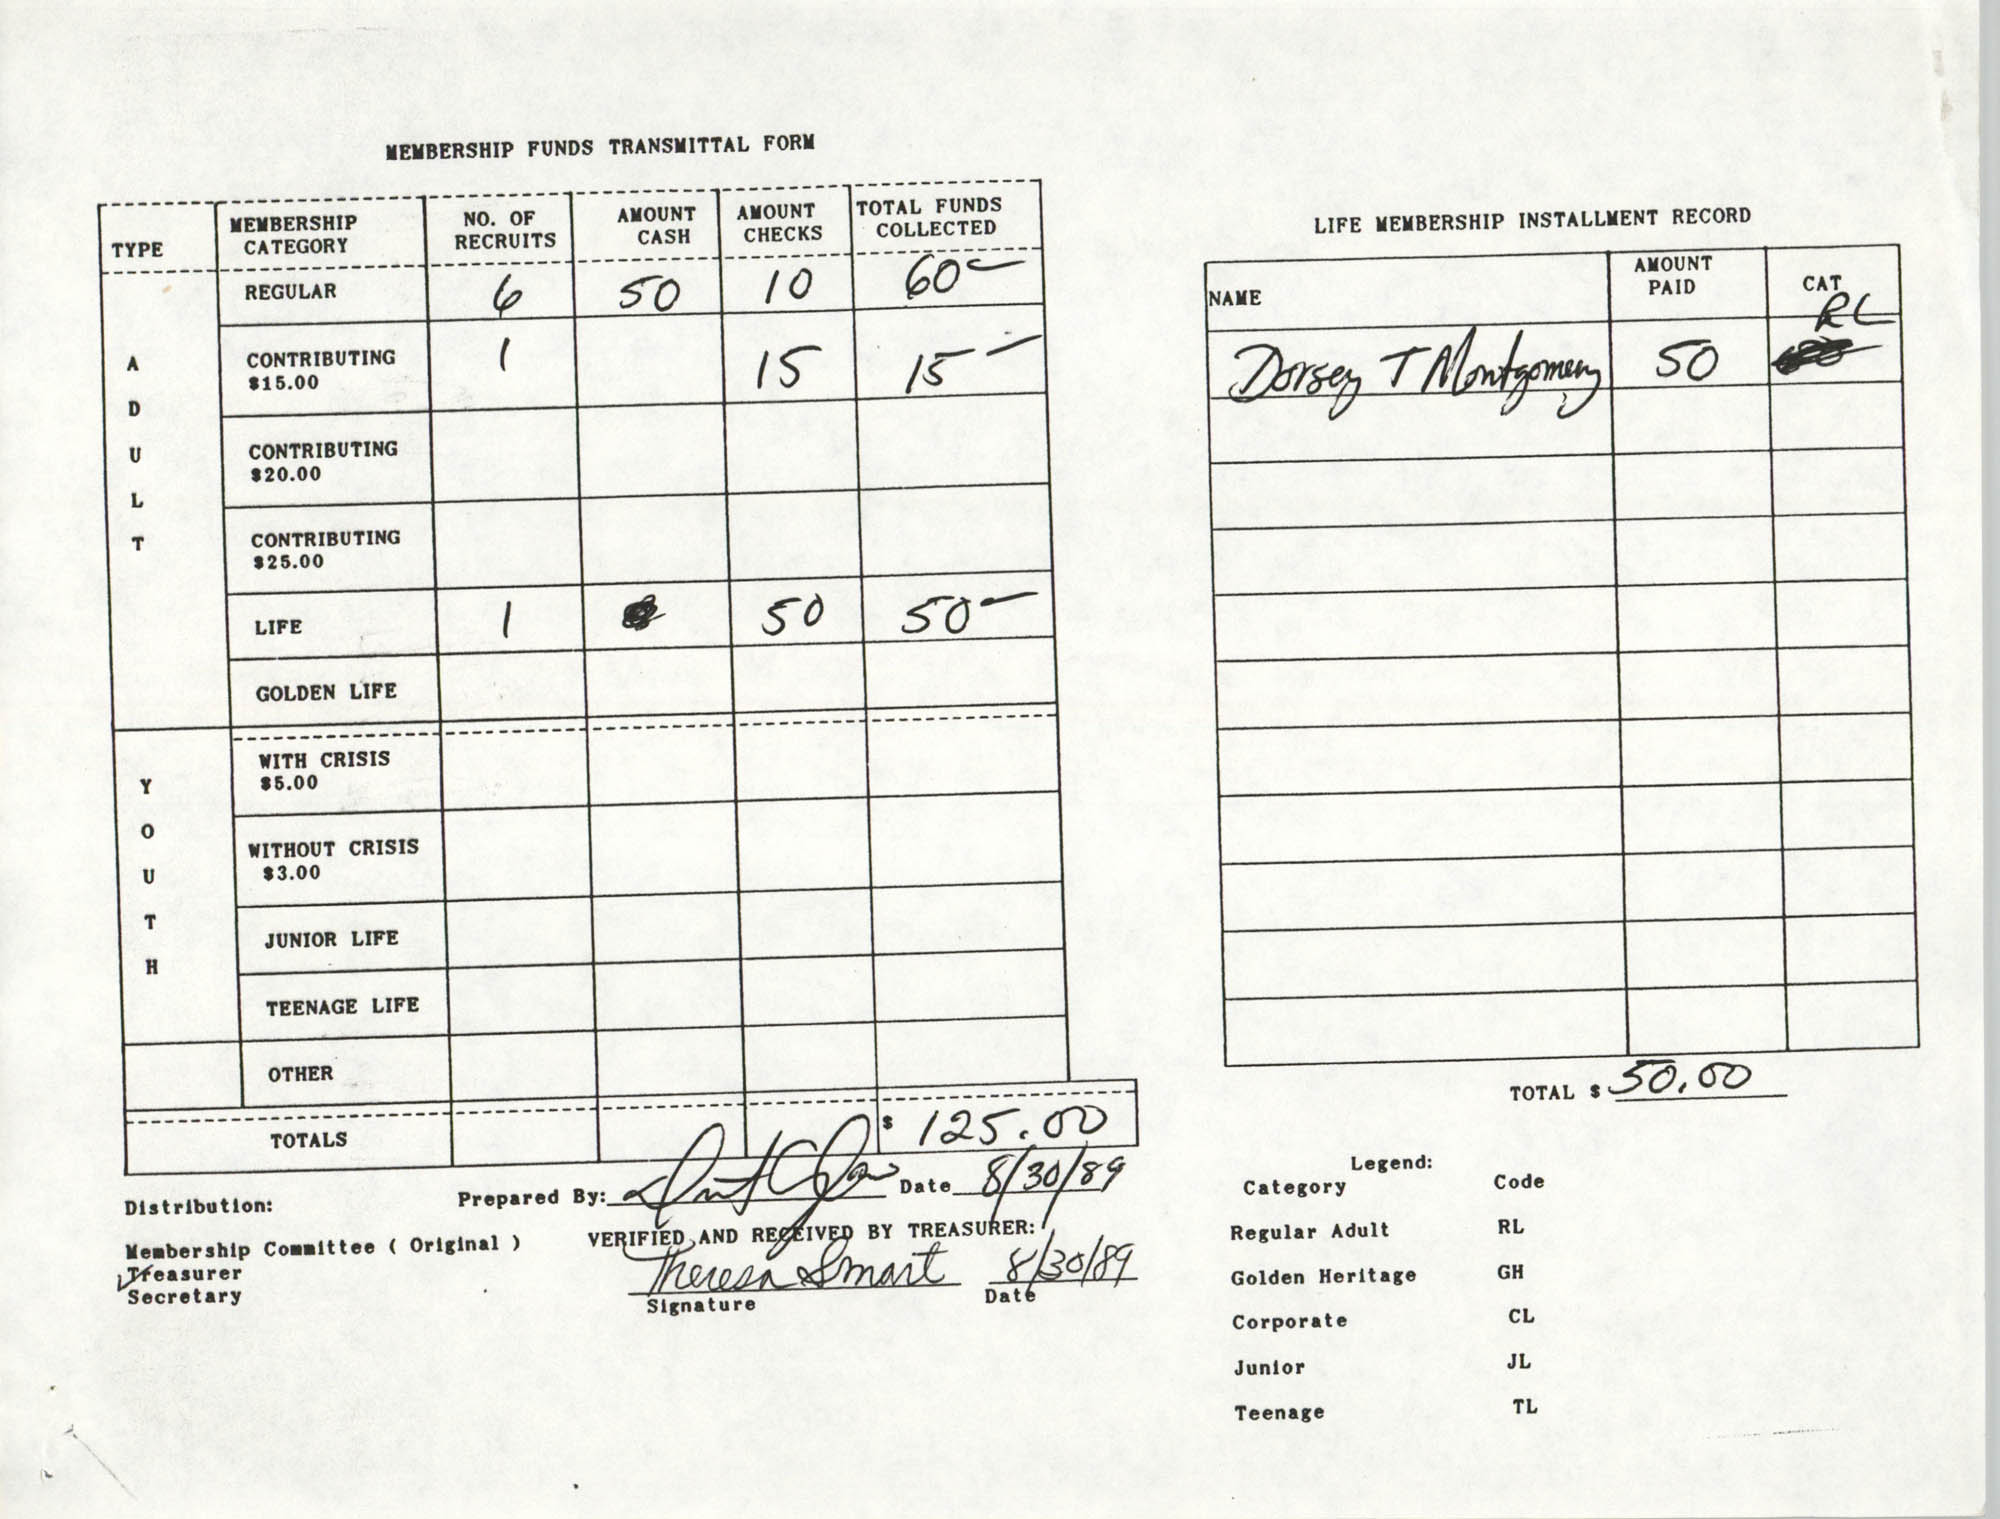 Charleston Branch of the NAACP Funds Transmittal Forms, August 1989, Page 4